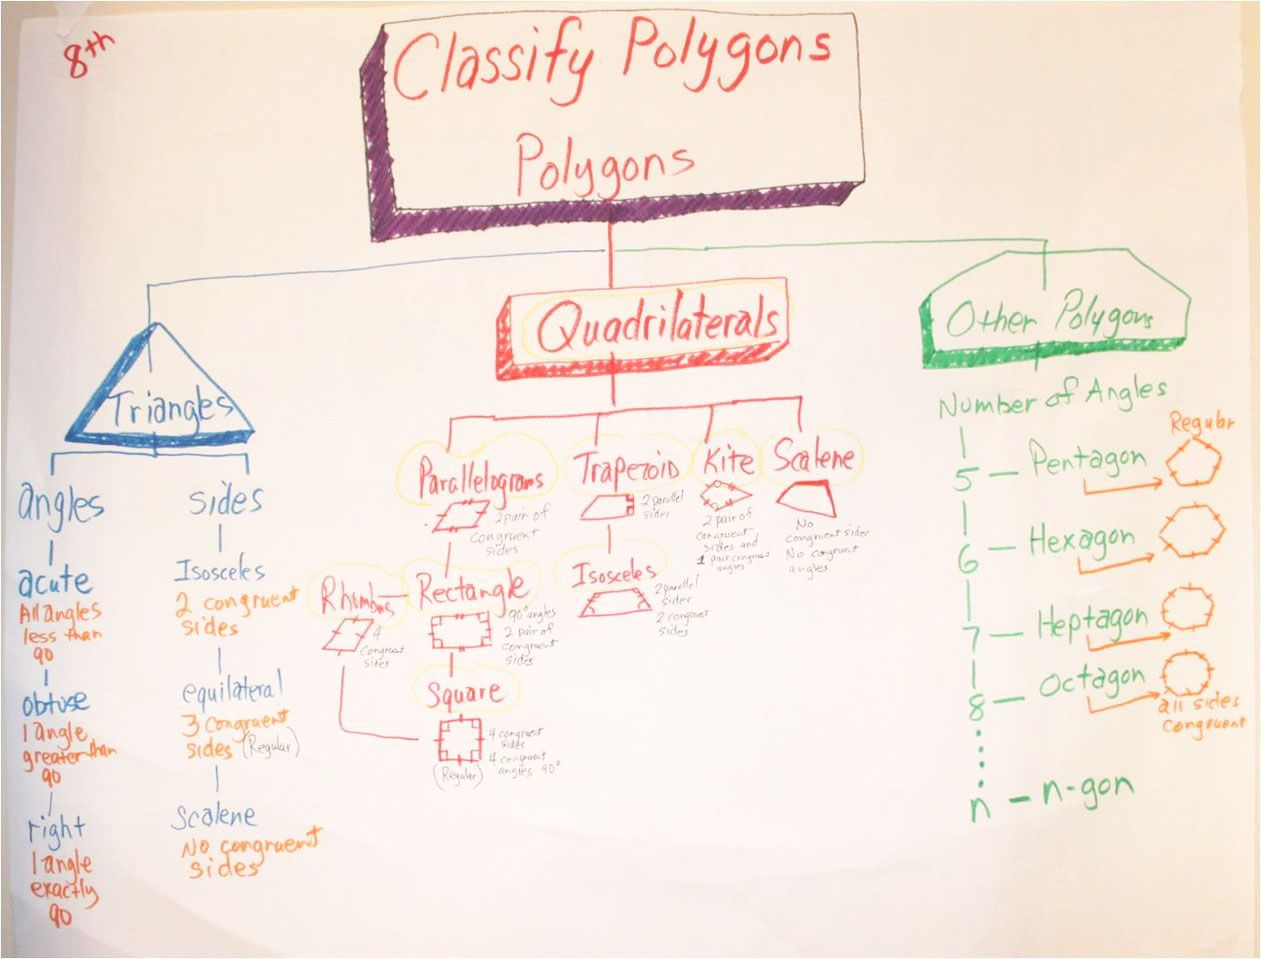 Midweek Map Classifying Polygons